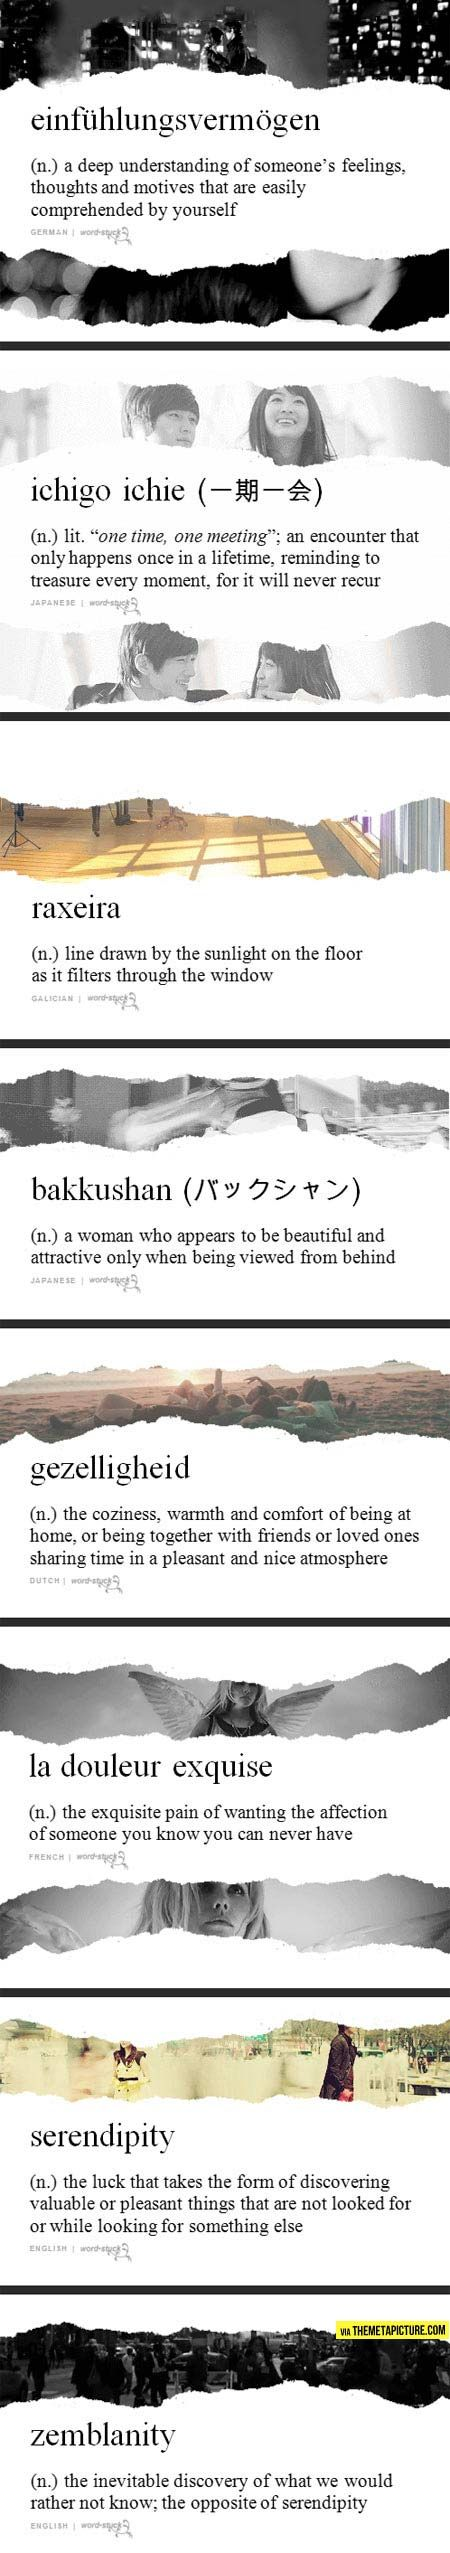 Very unusual words and their meaning...